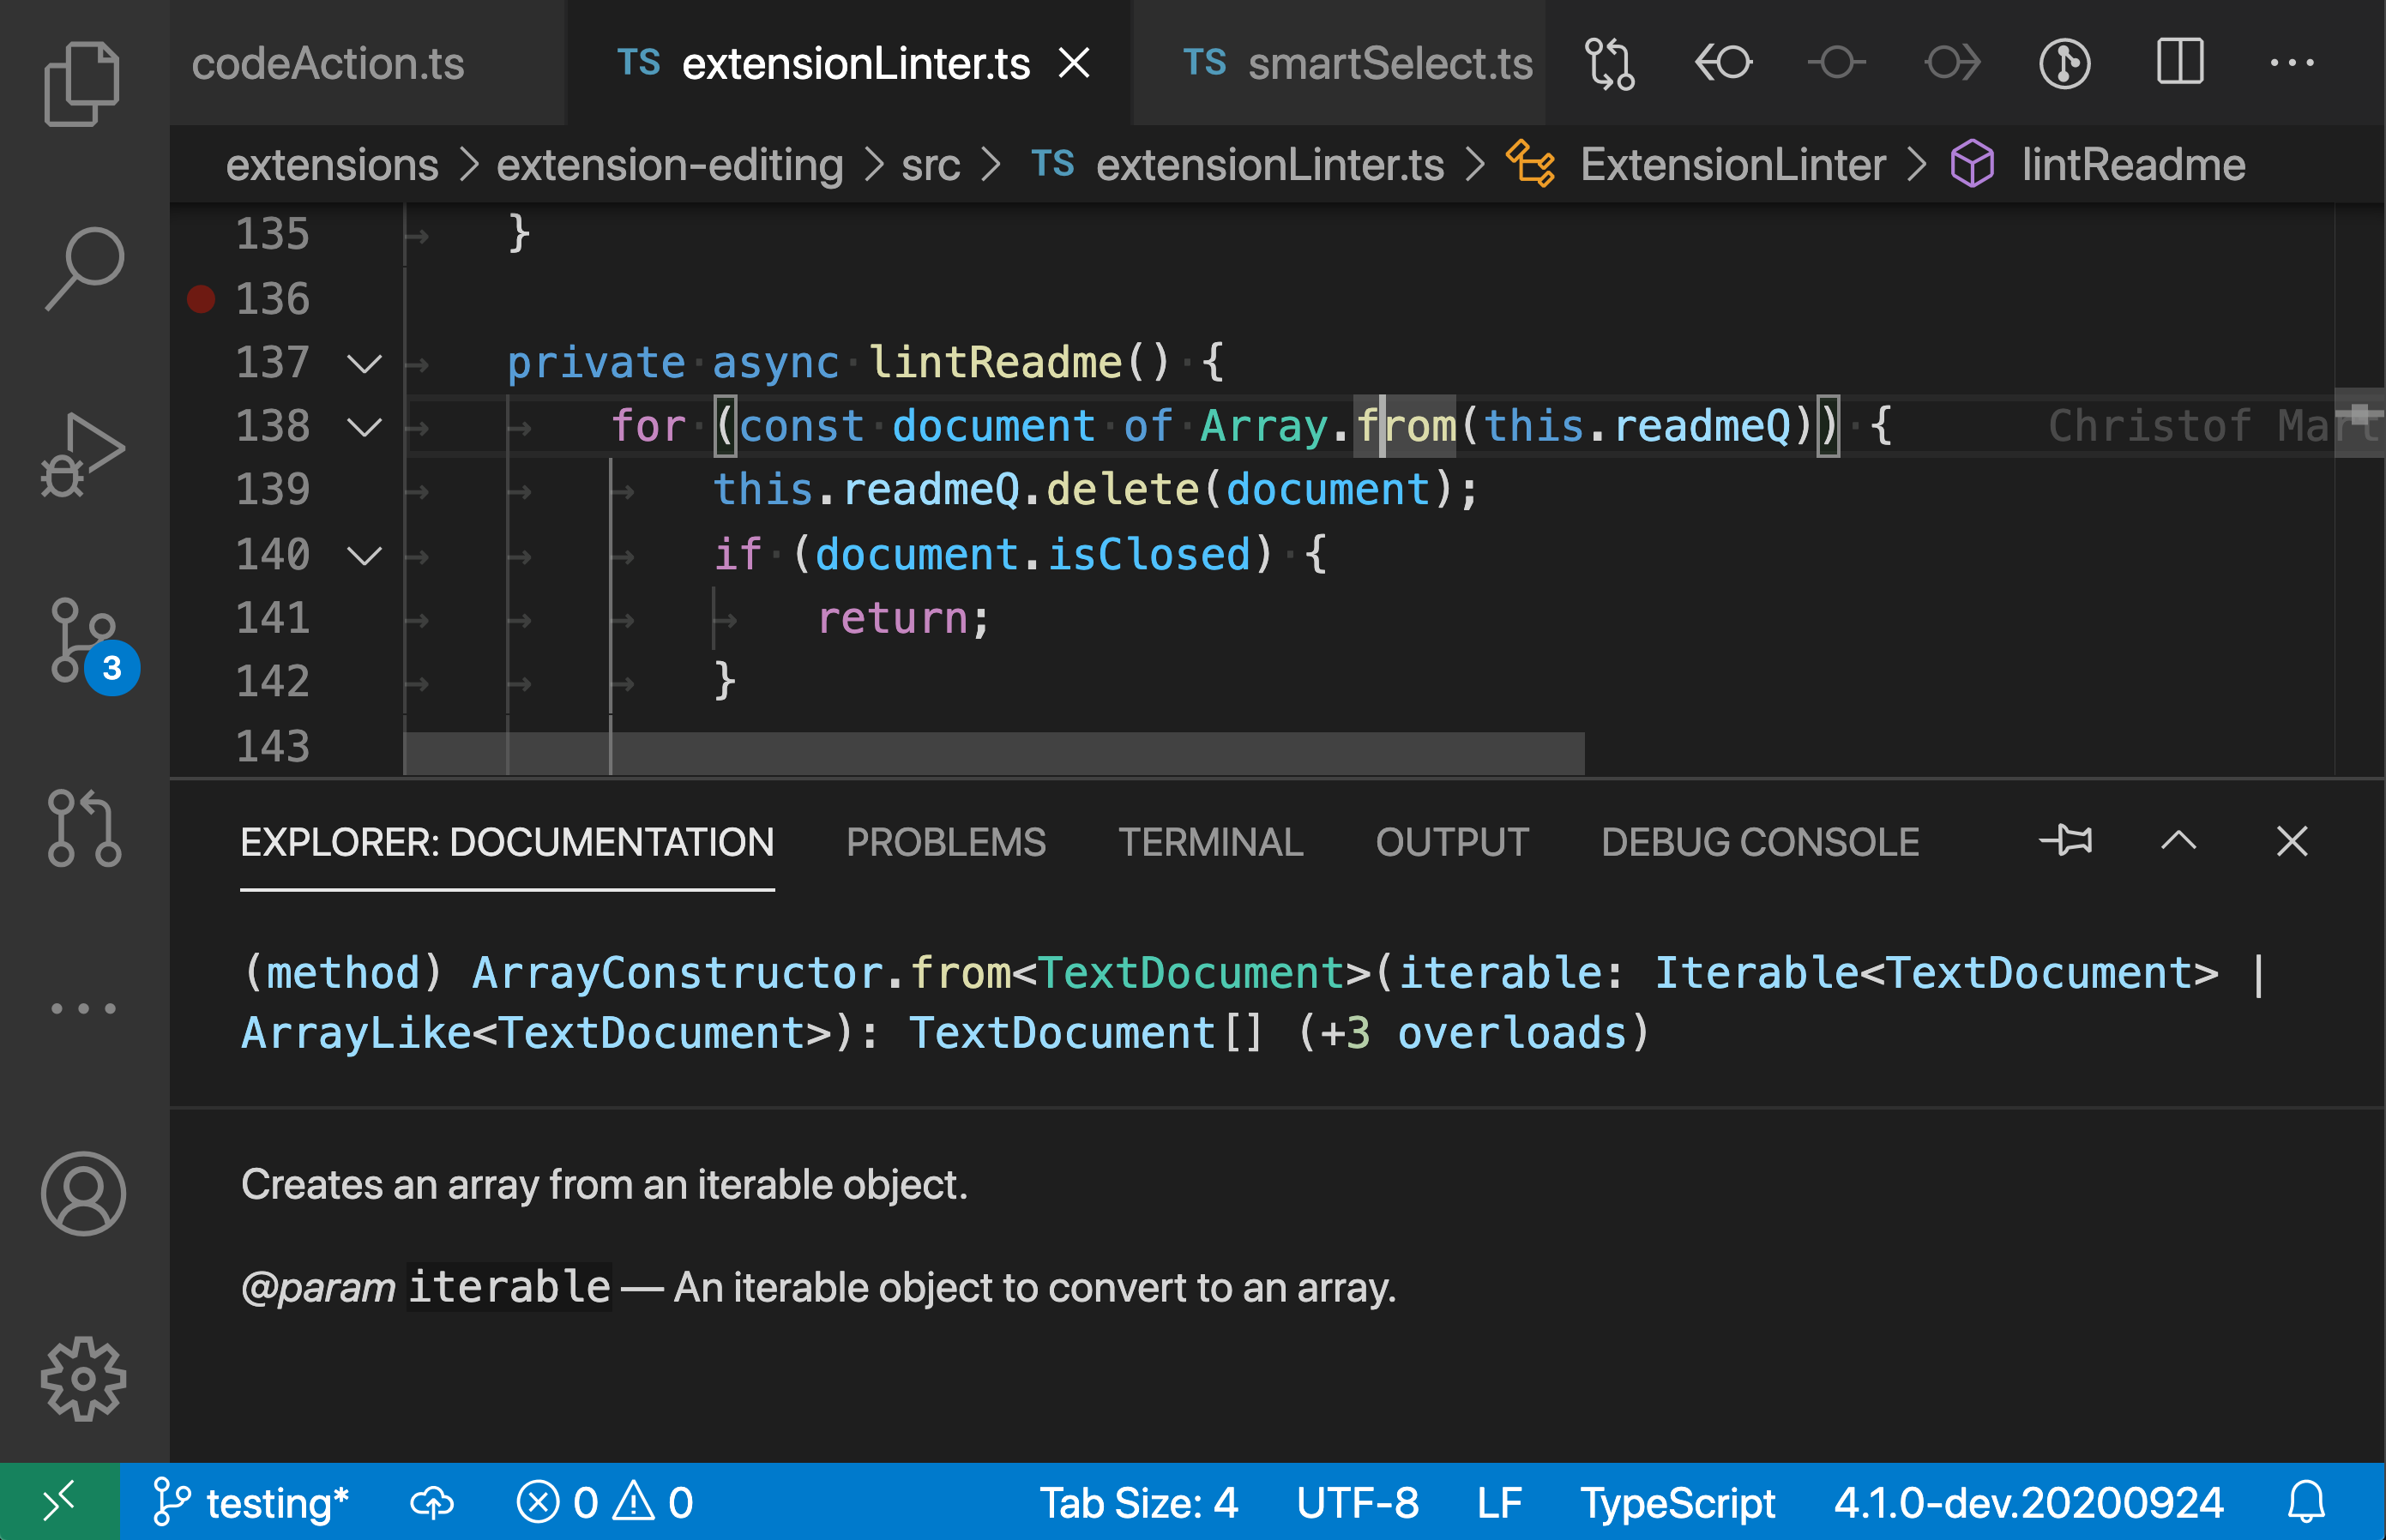 Showing the docs for Array.from in the panel